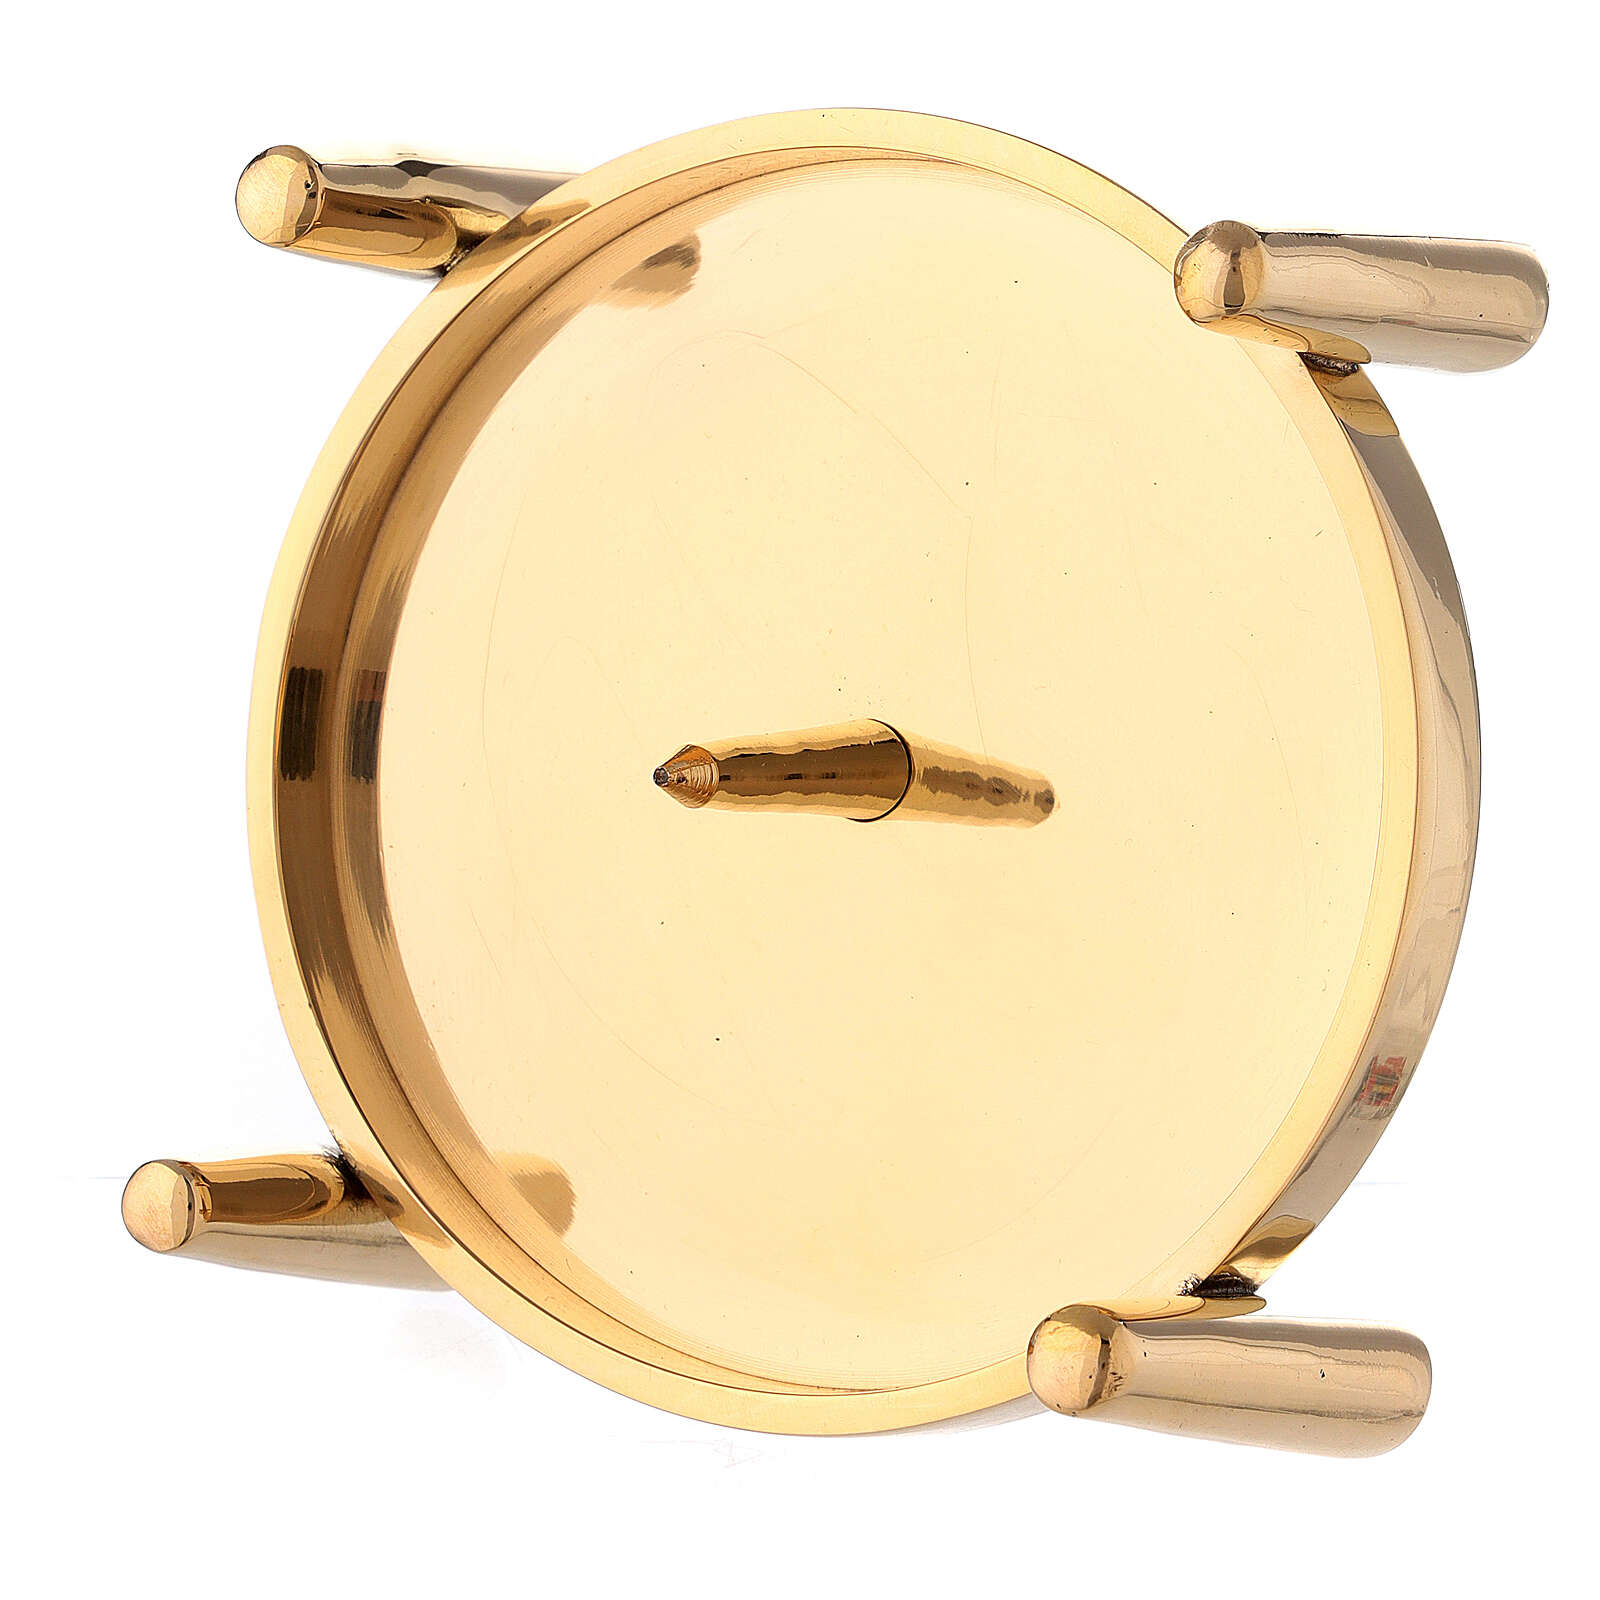 Candlestick with spike polished gold plated brass 4 in 4